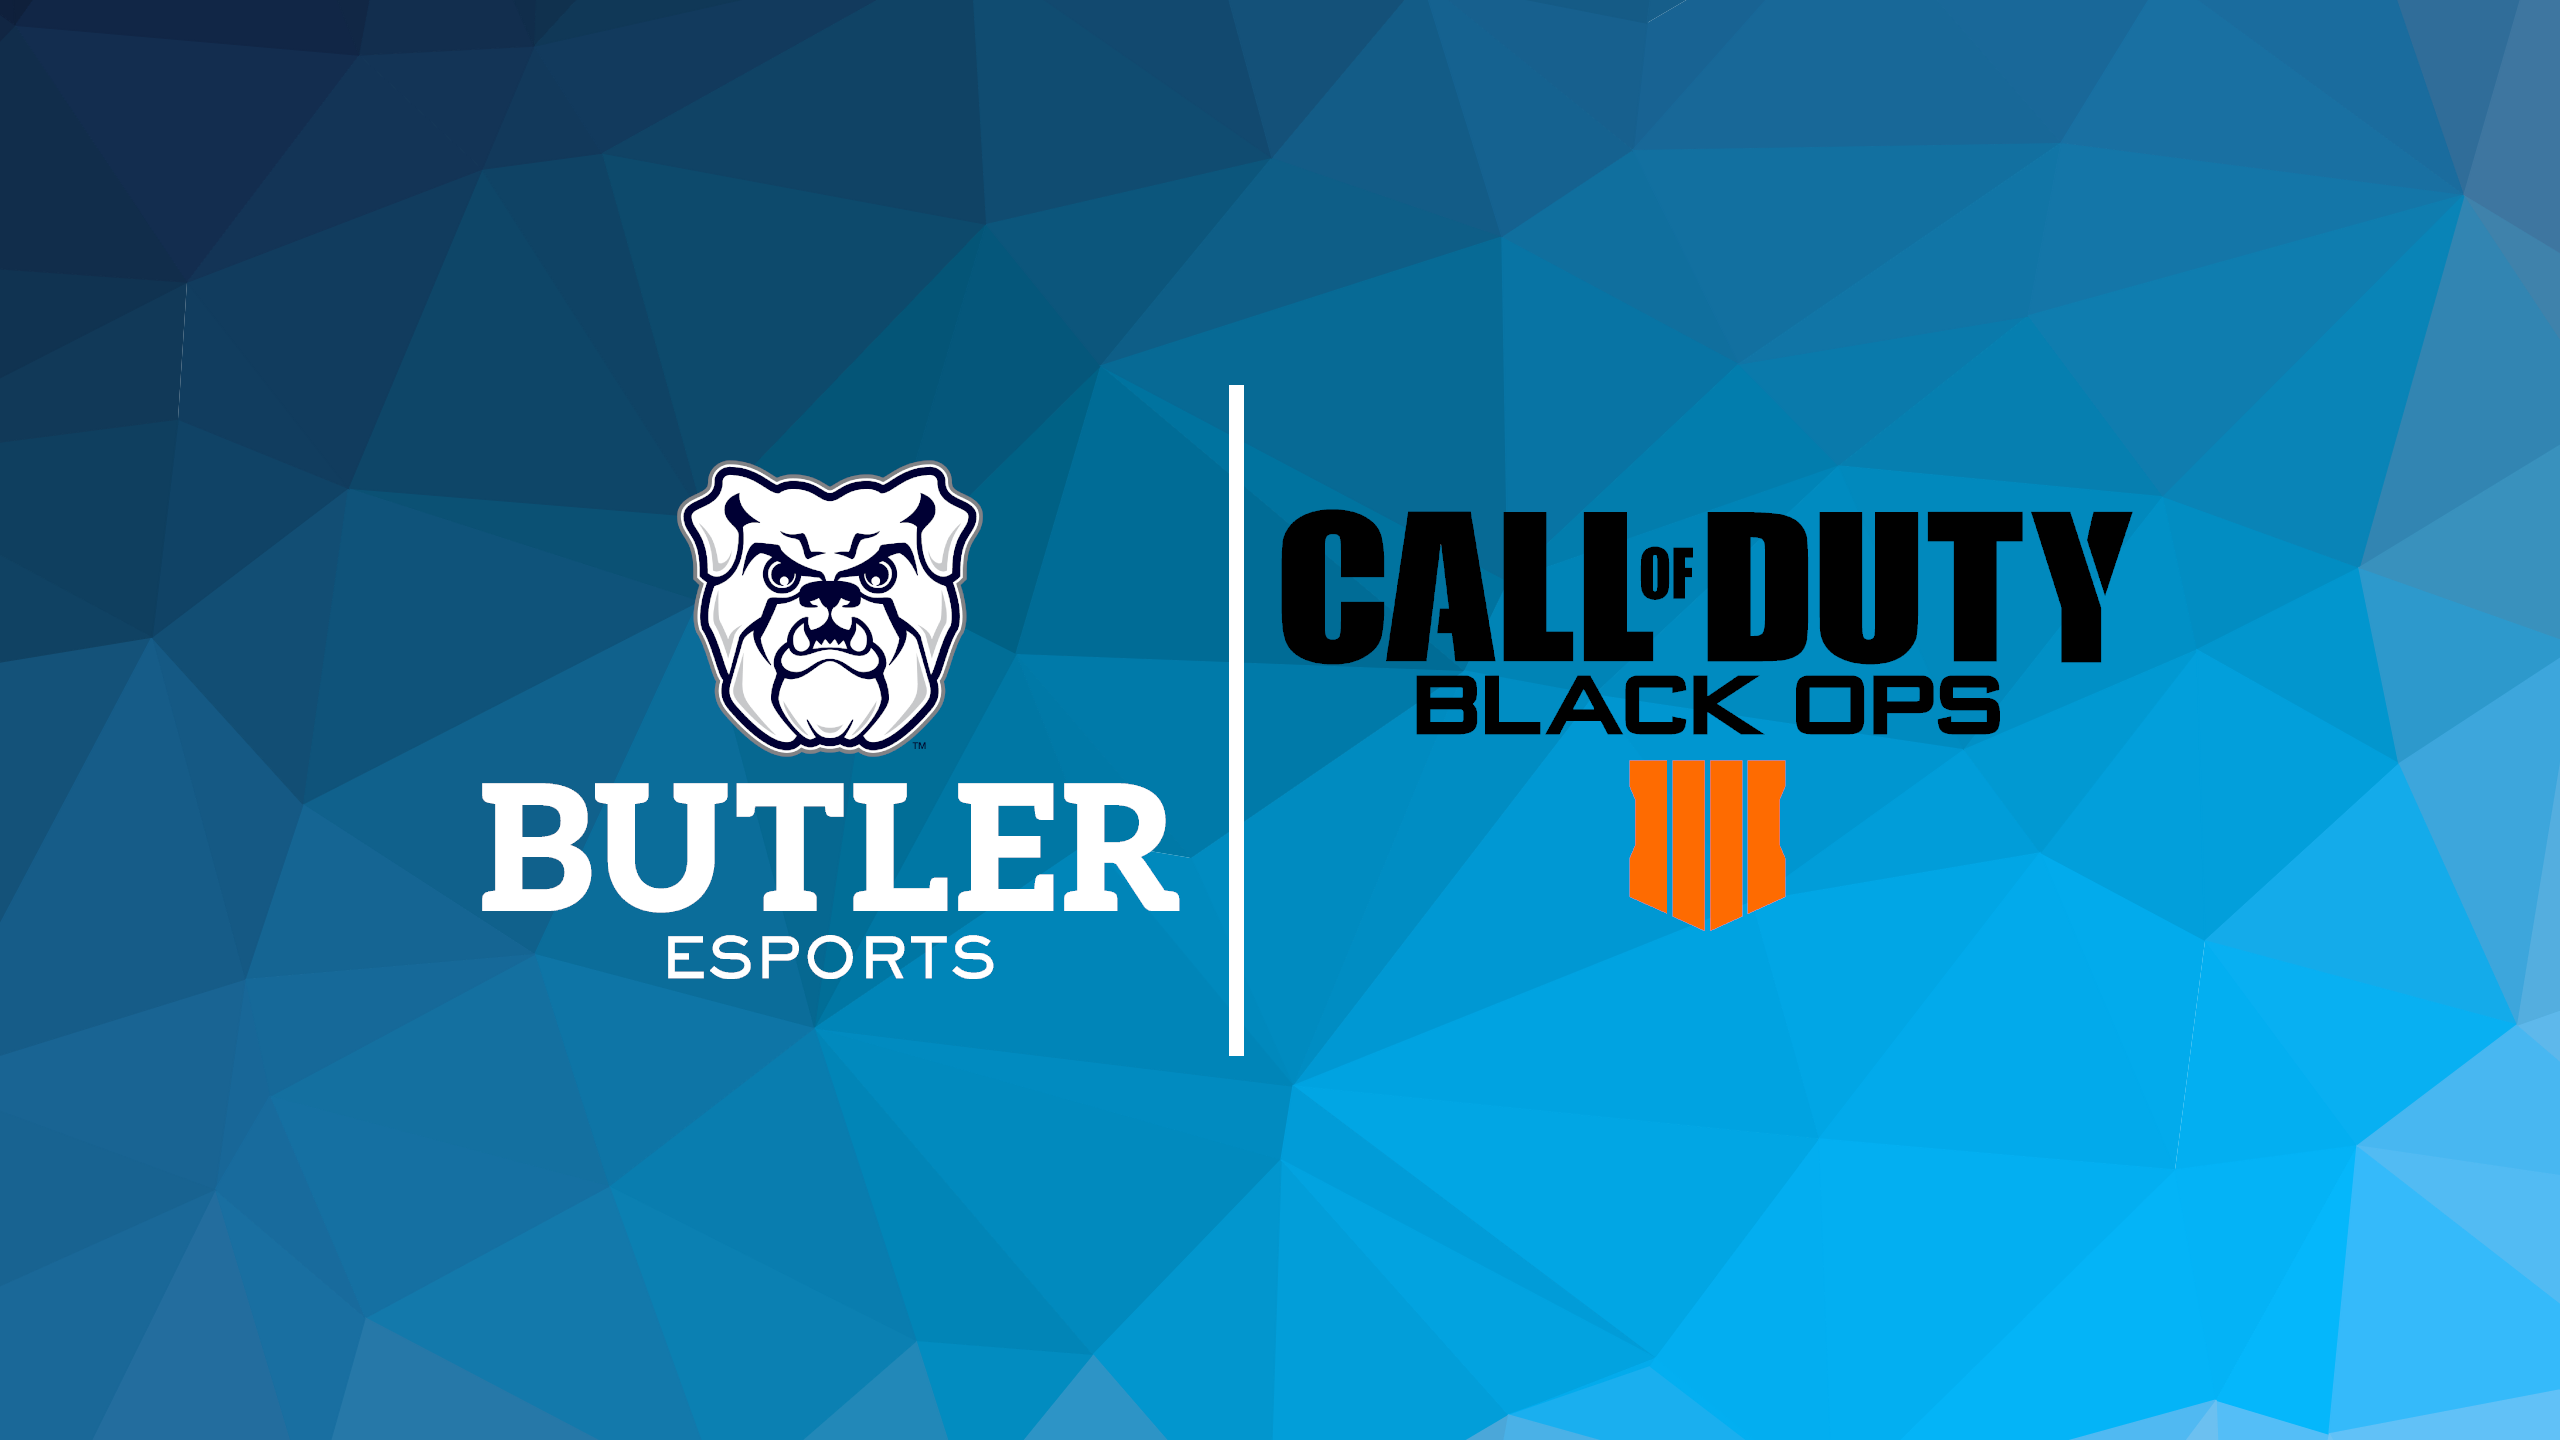 Butler Call of Duty vs University of Tennessee Knoxville